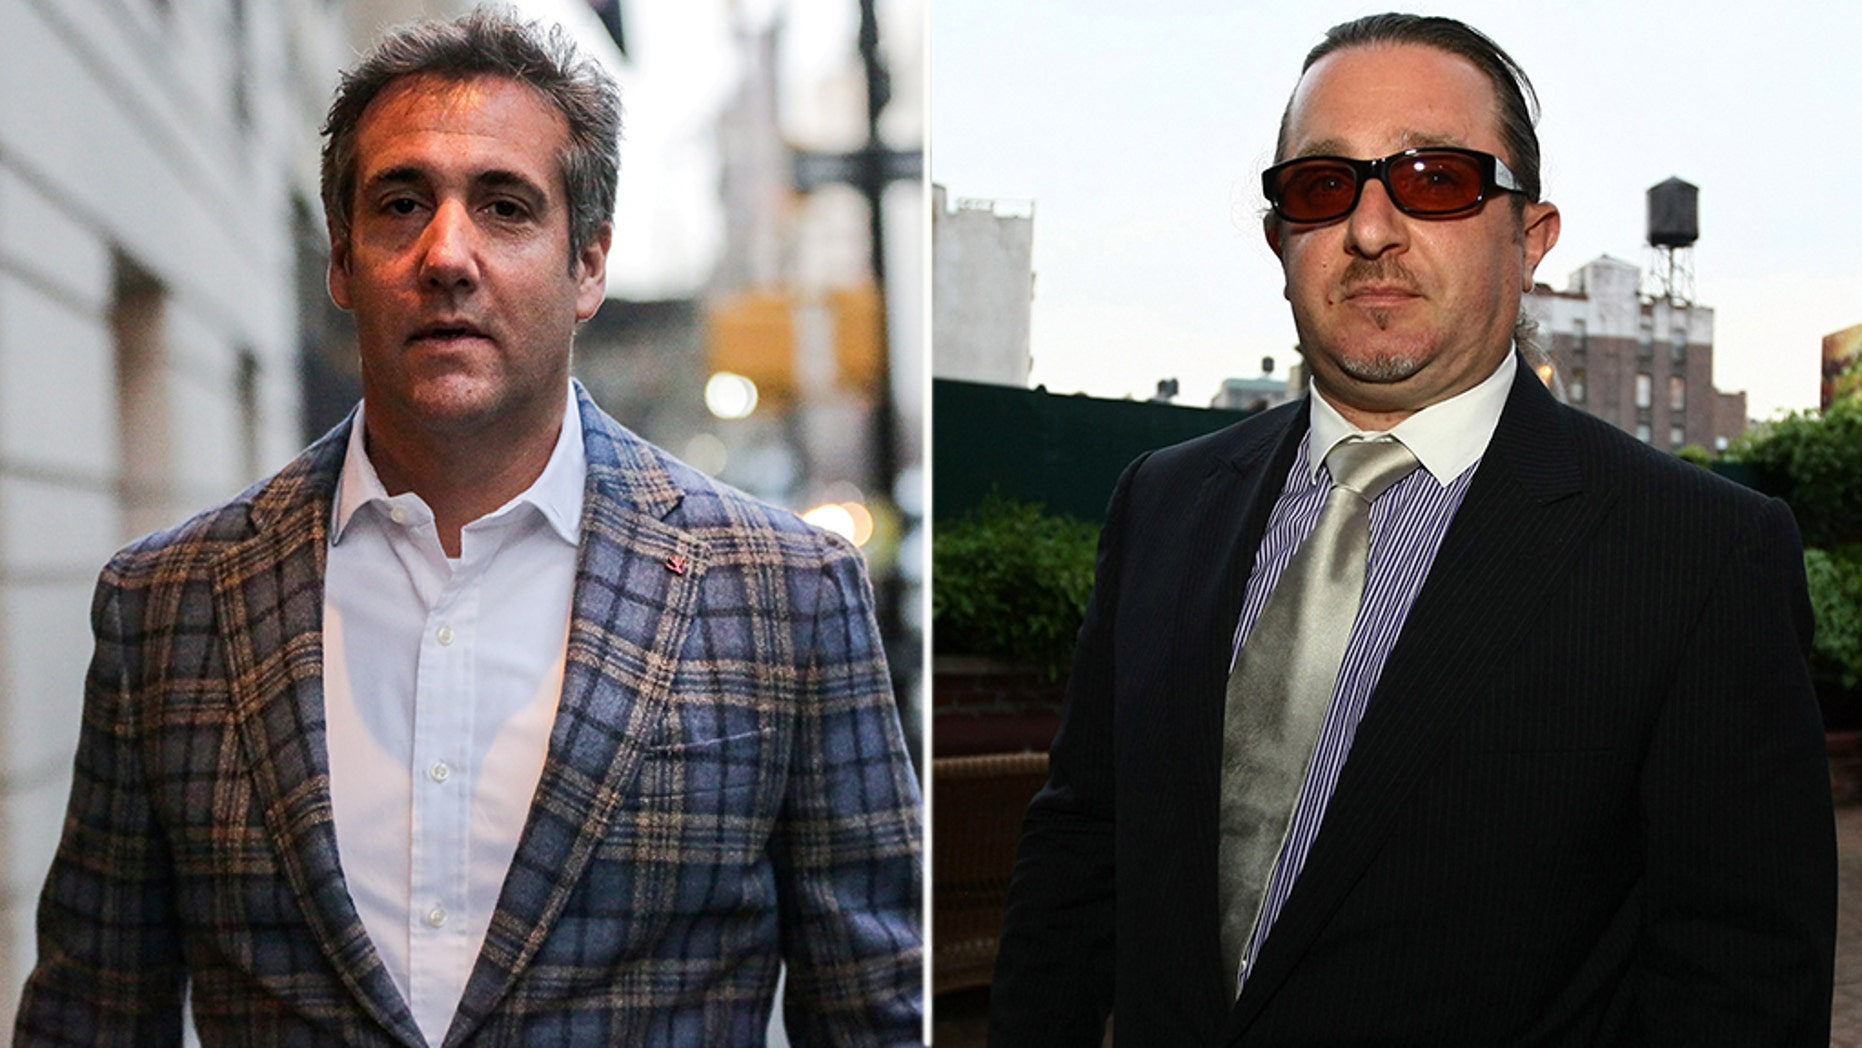 New York City taxi magnate Evgeny Freidman (right), a longtime business partner of President Donald Trump's personal lawyer, Michael Cohen (left), has pleaded guilty to tax fraud in a deal that requires him to cooperate in any ongoing investigations. (REUTERS/Getty)